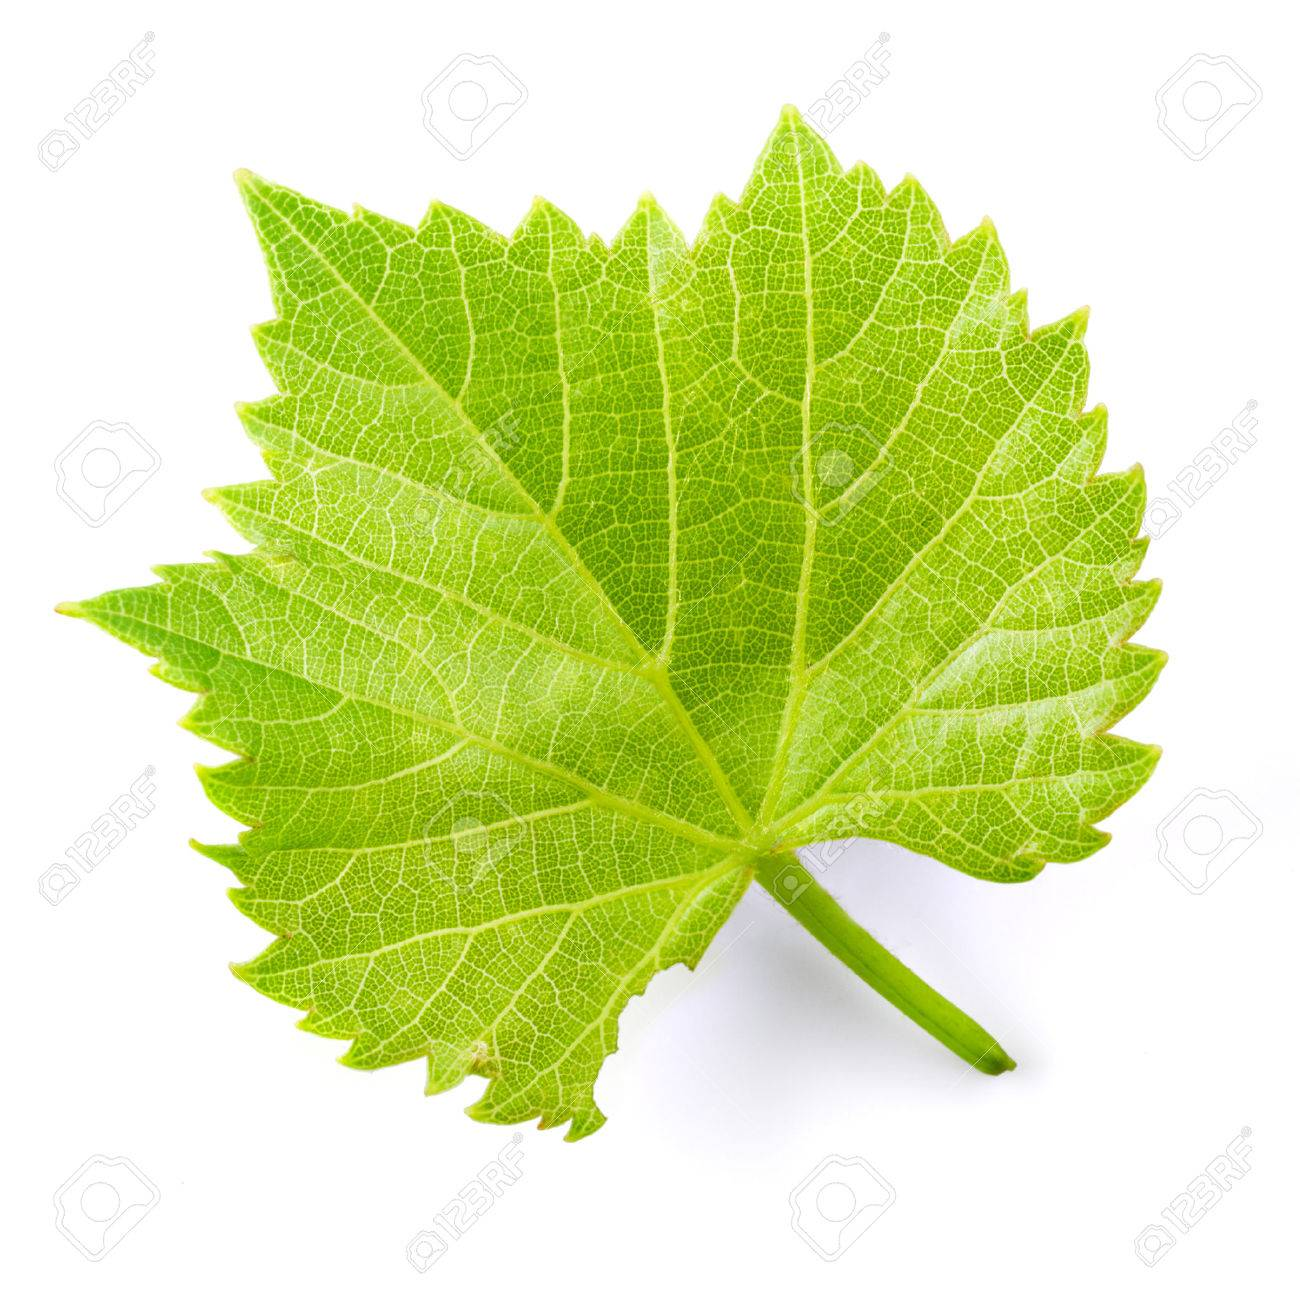 Grape leaf isolated on white. - 65231419